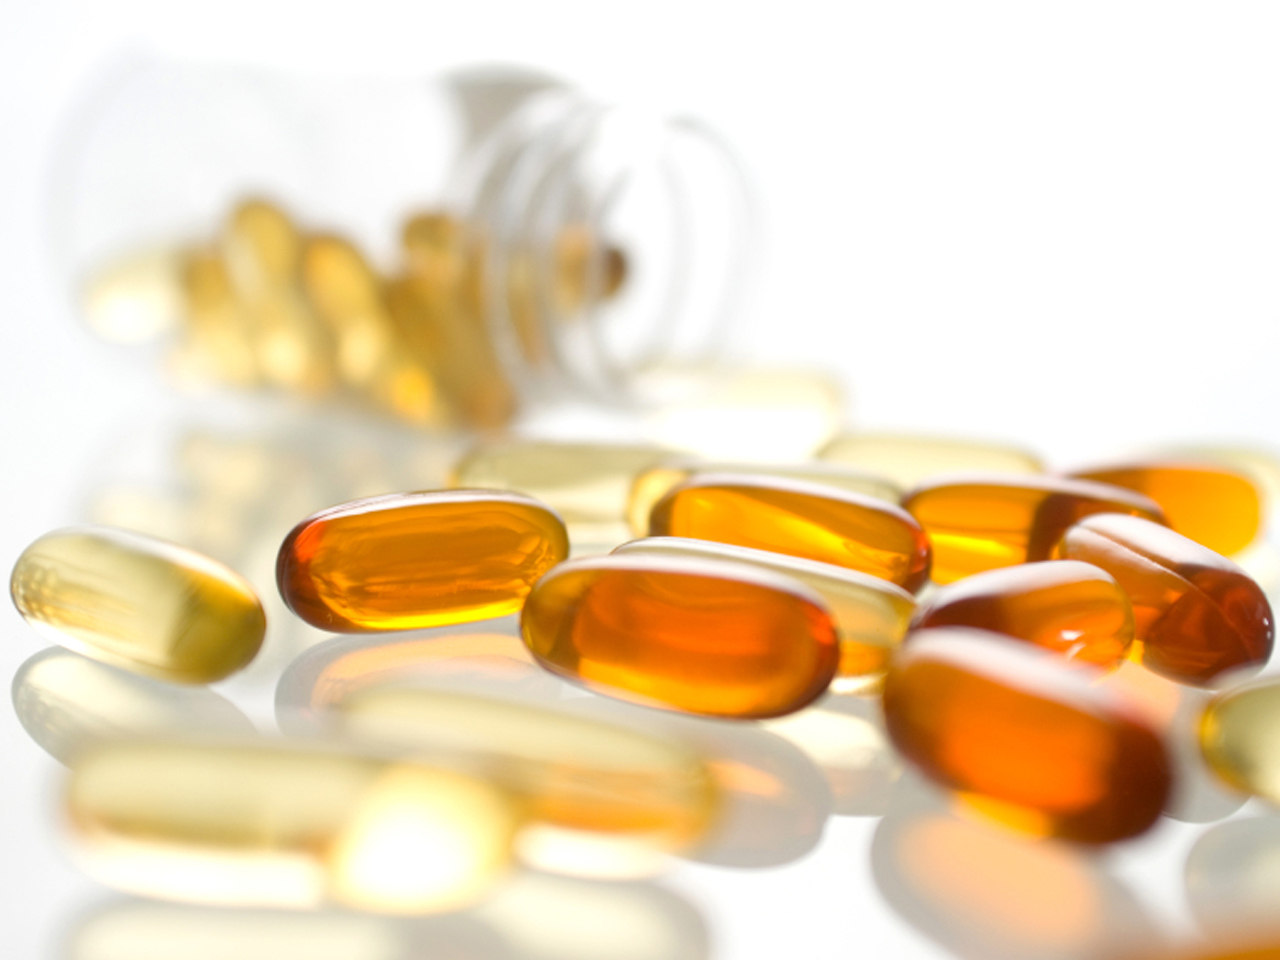 Acid reflux drugs may lead to vitamin B12 deficiency - CBS News